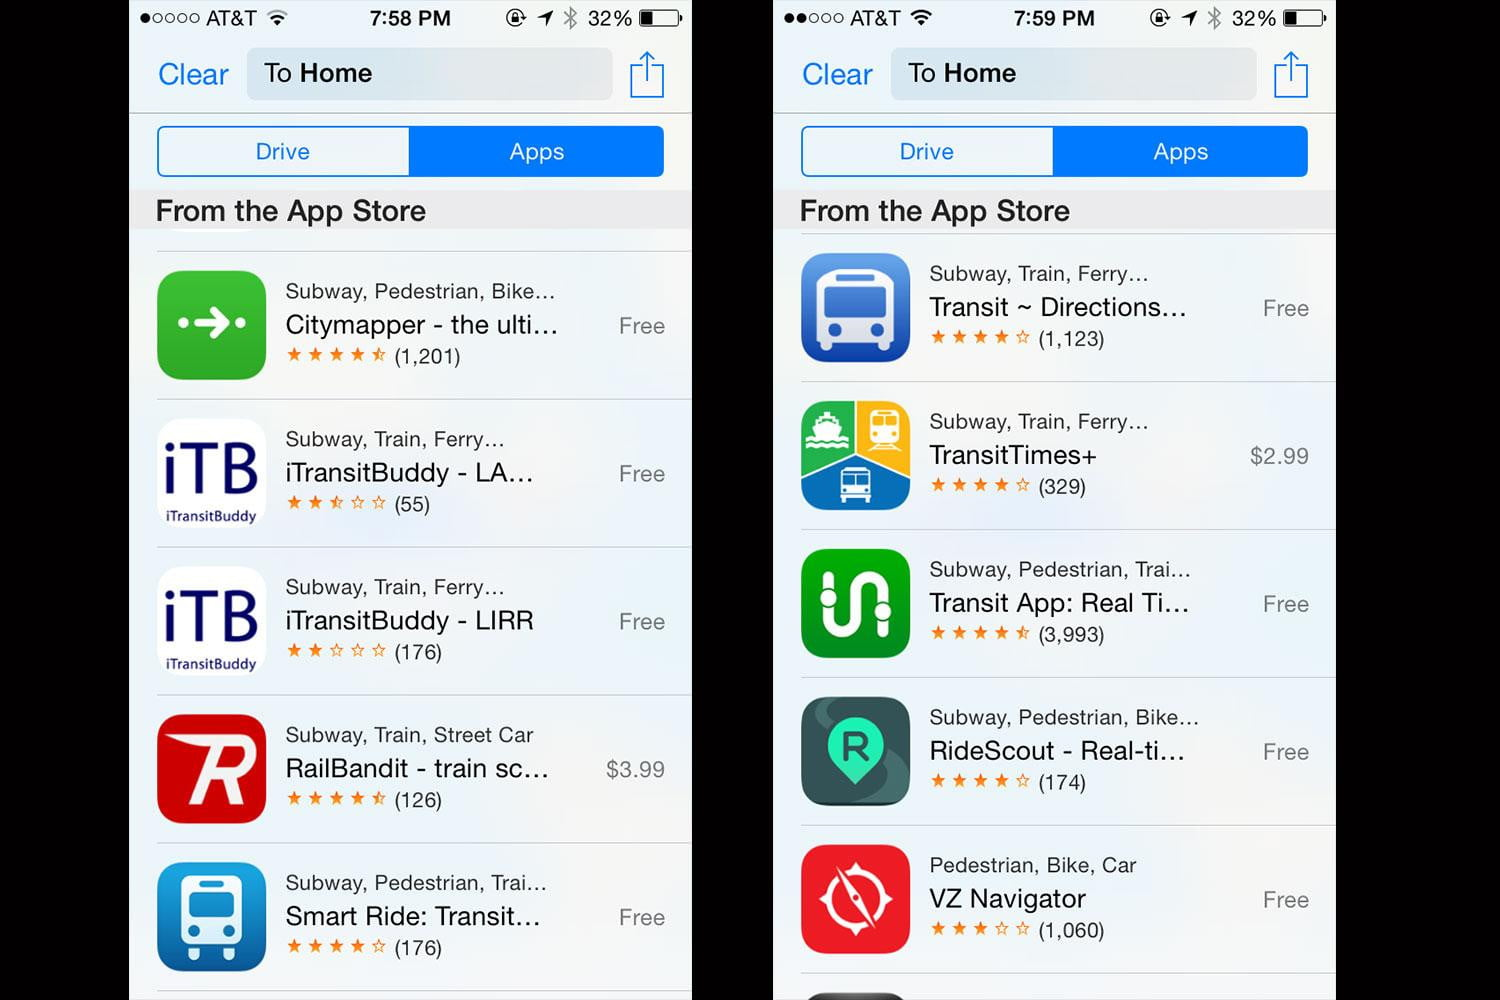 apple-maps-search-apps-nearby